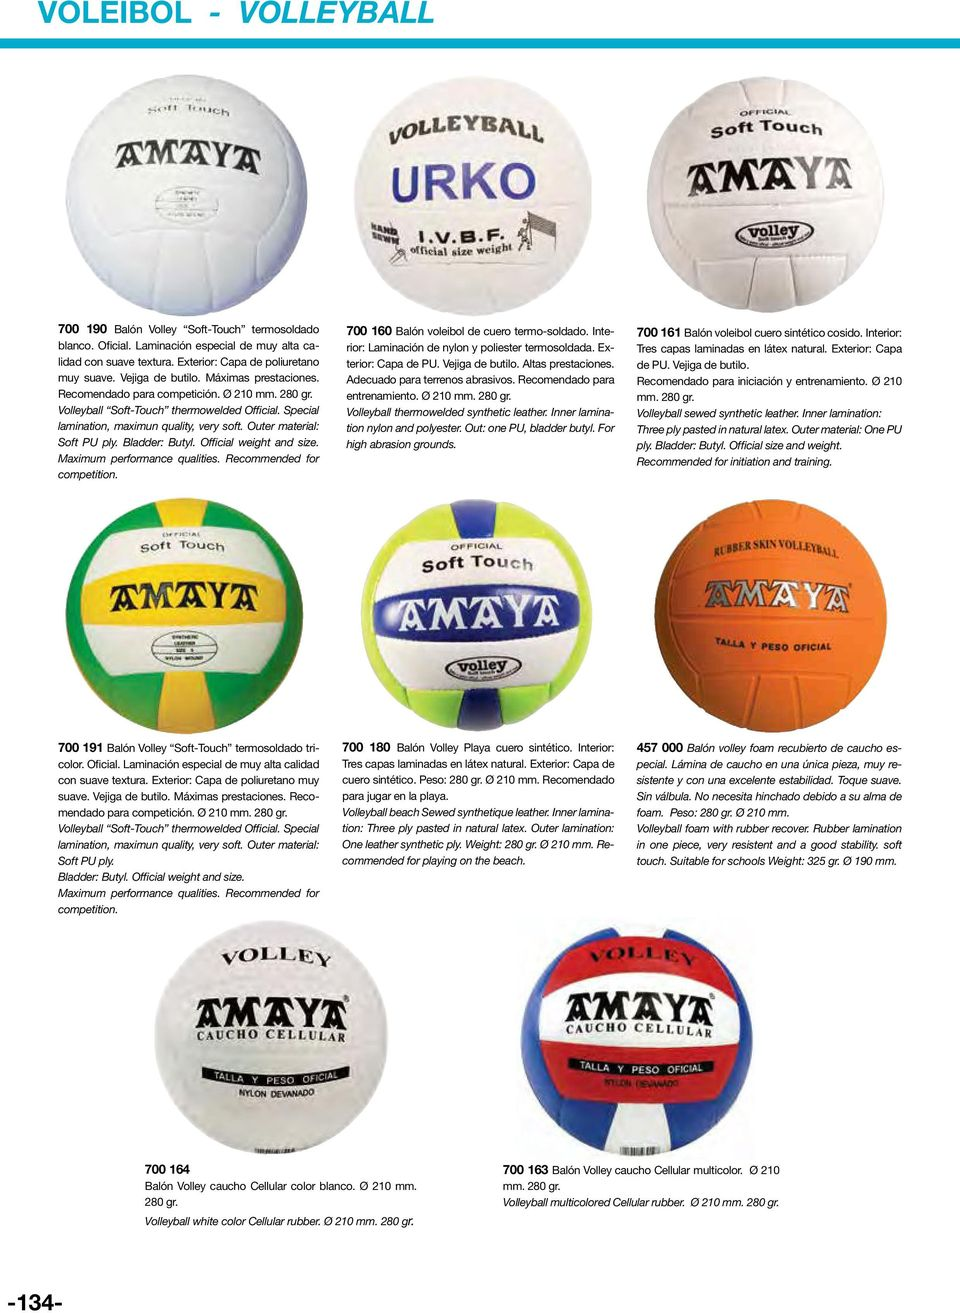 Bladder: Butyl. Official weight and size. Maximum performance qualities. Recommended for competition. 700 160 Balón voleibol de cuero termo-soldado.